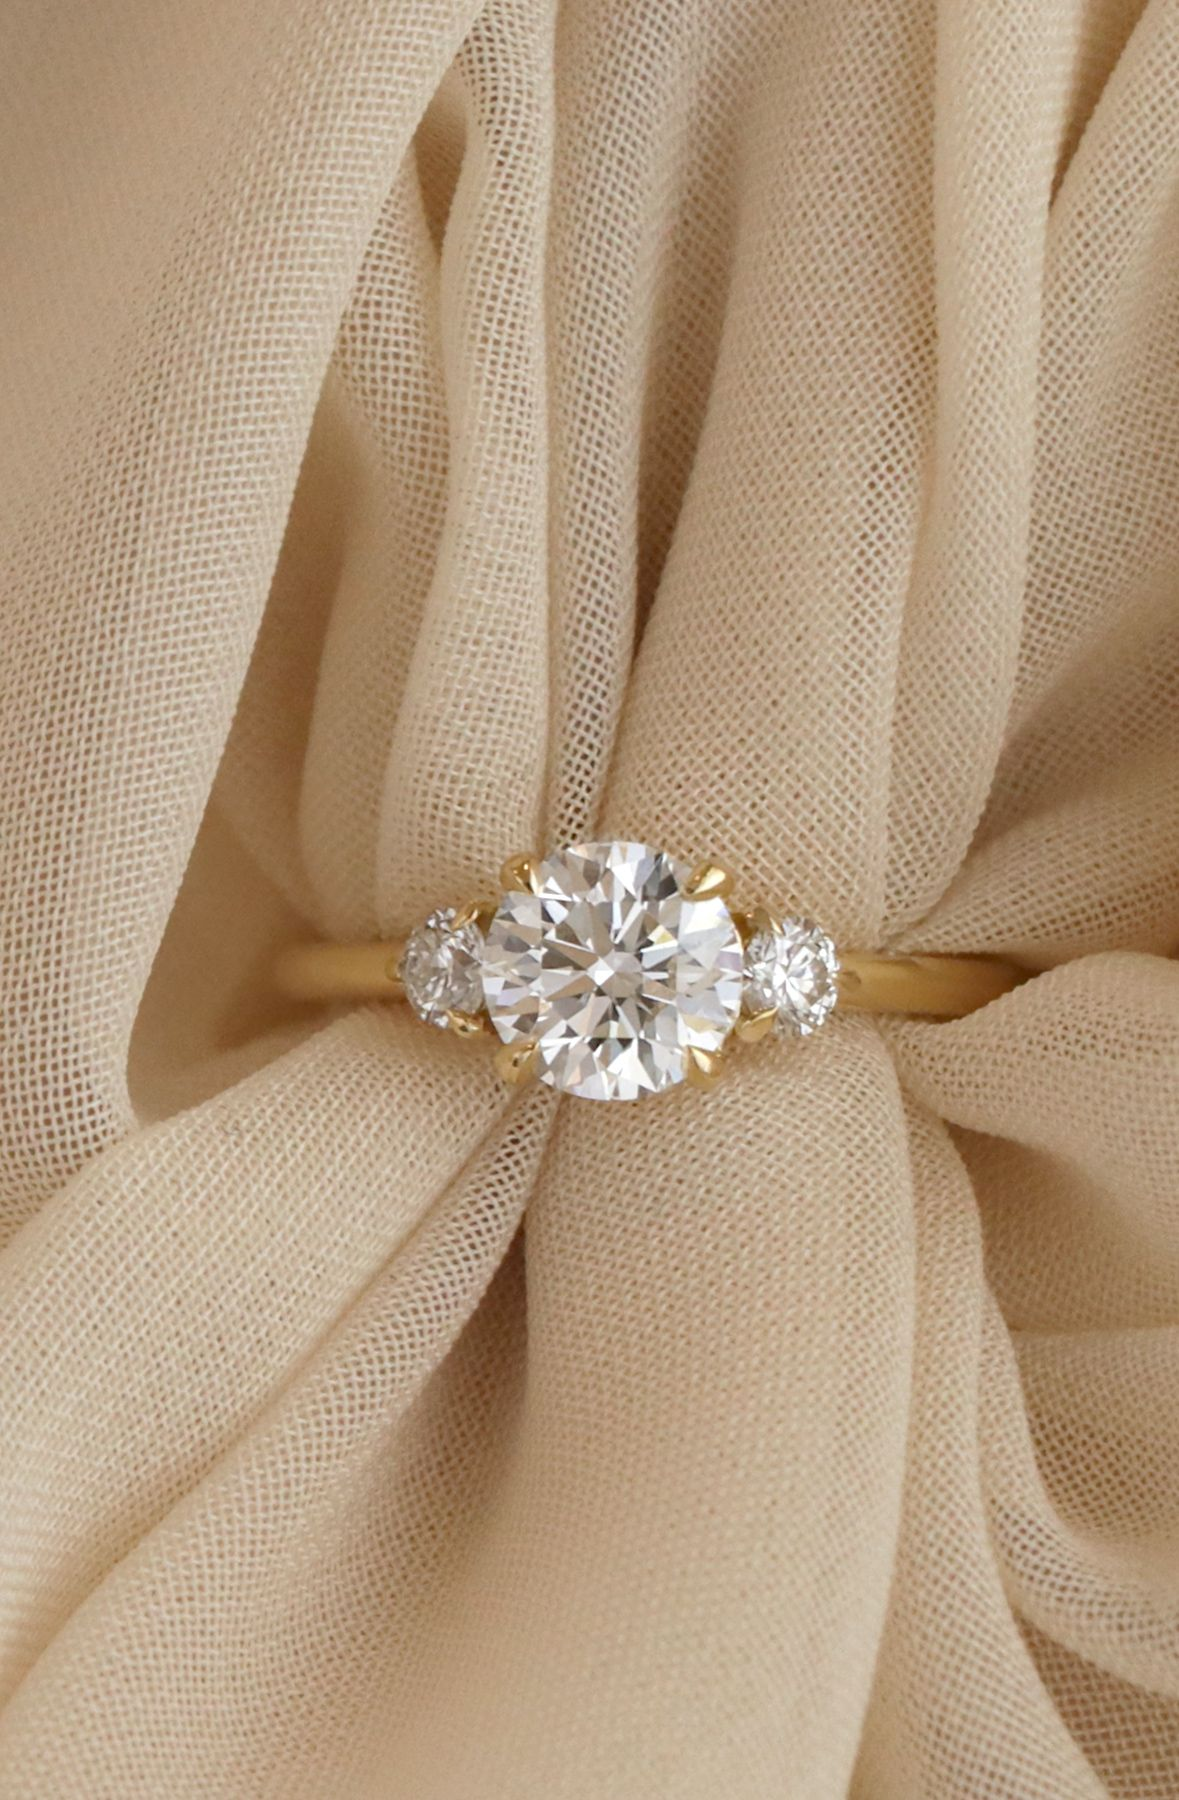 Vow Vrai Oro Wedding The 3 Stone Engagement Ring In 18k Yellow Gold Pretty Engagement Rings Stone Engagement Rings 3 Stone Engagement Rings